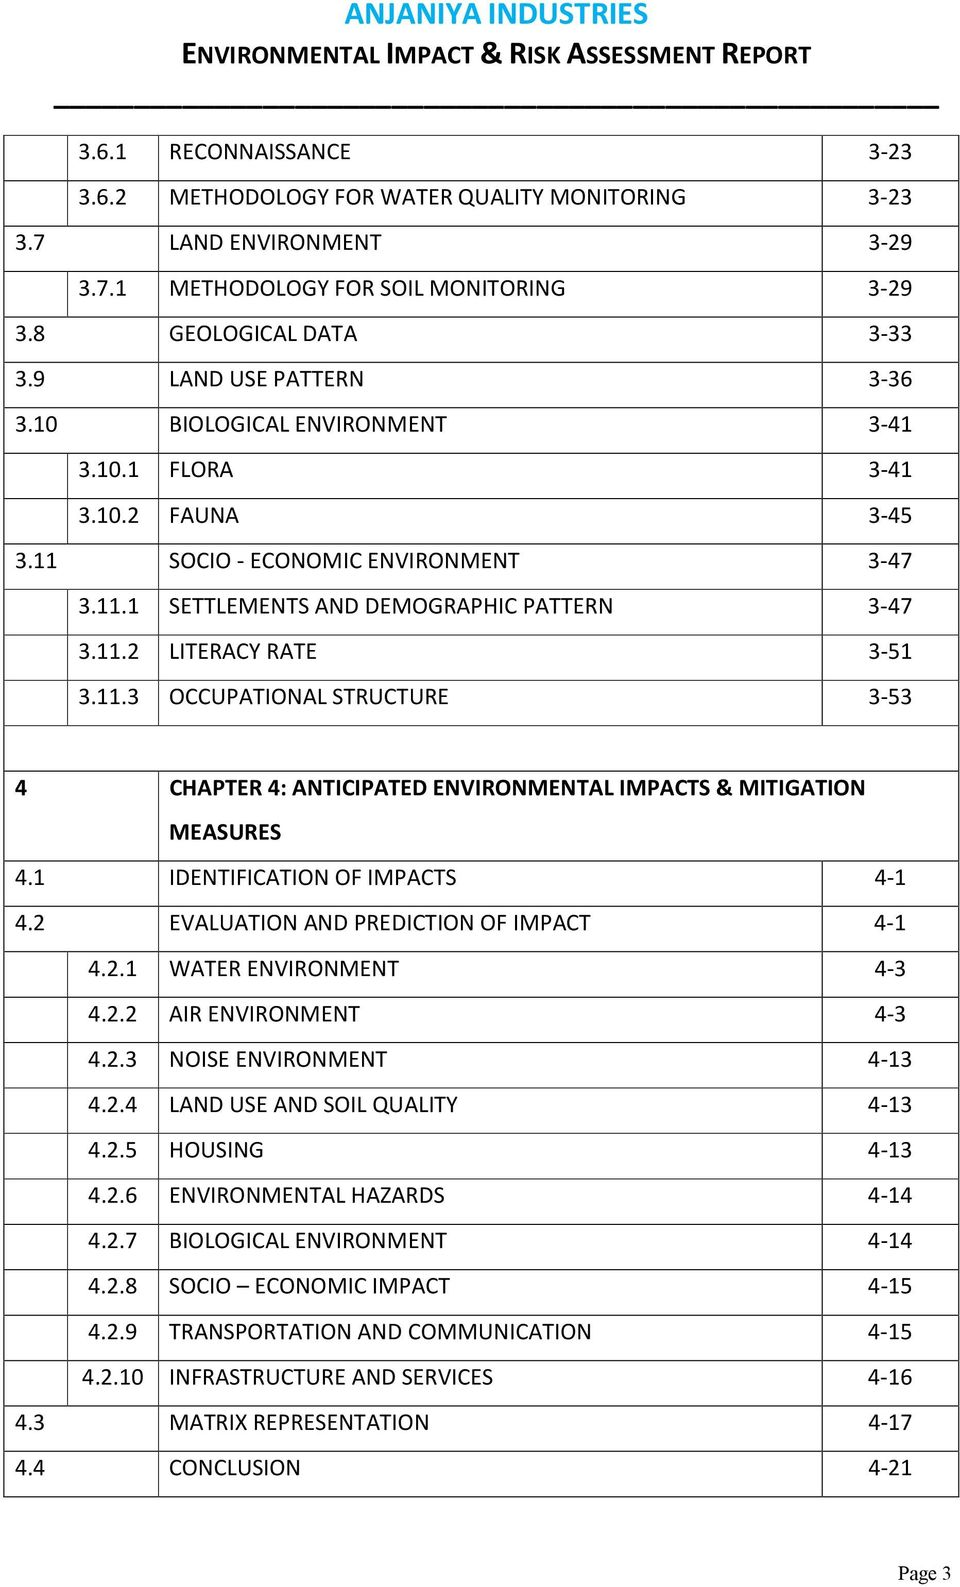 11.2 LITERACY RATE 3-51 3.11.3 OCCUPATIONAL STRUCTURE 3-53 4 CHAPTER 4: ANTICIPATED ENVIRONMENTAL IMPACTS & MITIGATION MEASURES 4.1 IDENTIFICATION OF IMPACTS 4-1 4.